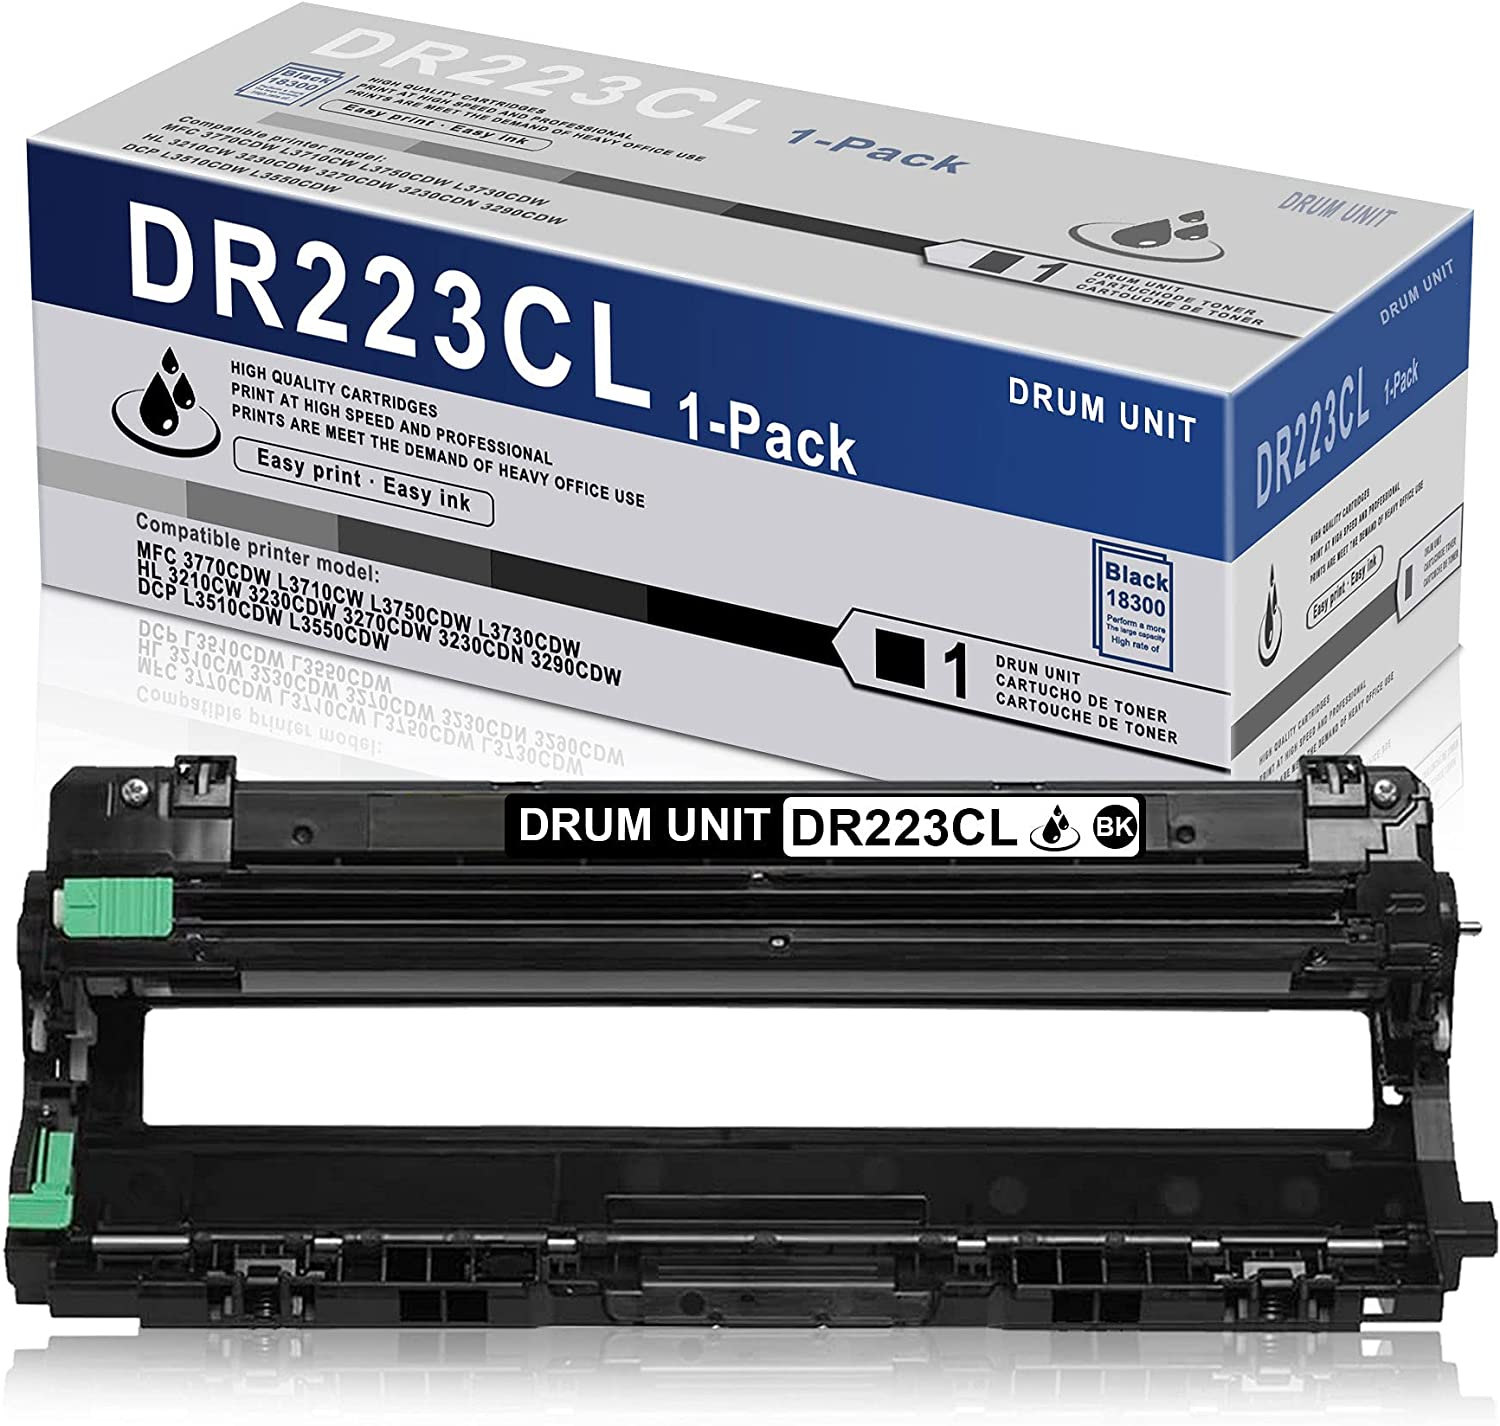 1 Pack Black High Yield Drum Unit DR223CL DR-223CL Compatible Replacement for Brother MFC 3770CDW L3710CW L3750CDW L3730CDW HL 3210CW 3230CDW 3270CDW 3230CDN 3290CDW DCP L3510CDW L3550CDW Printer